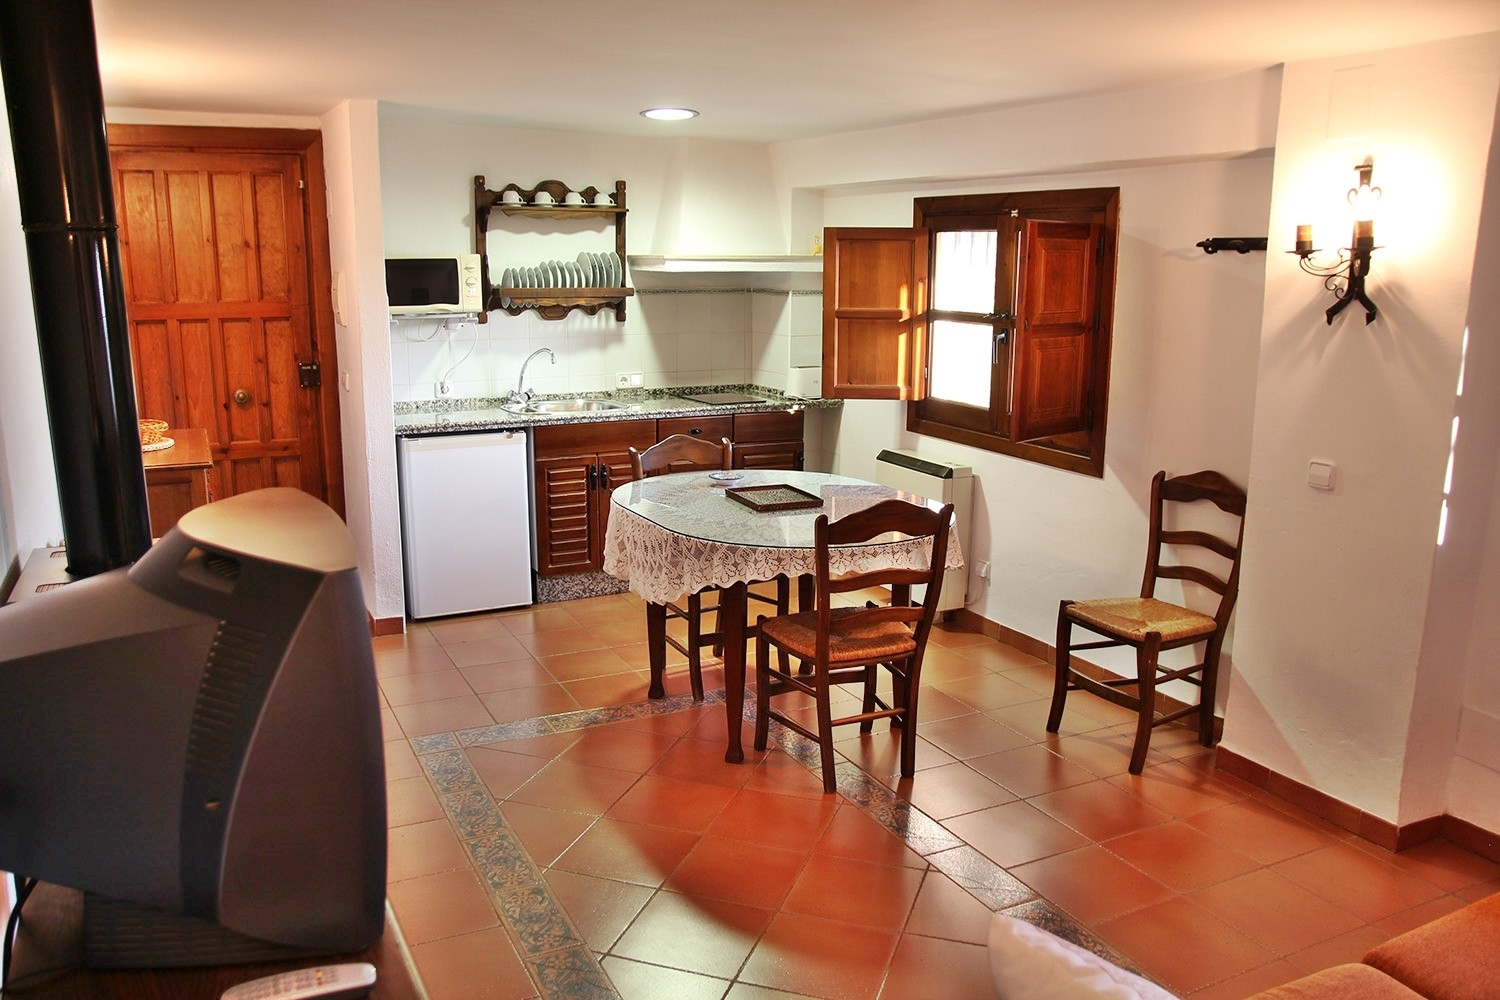 View to the open kitchen